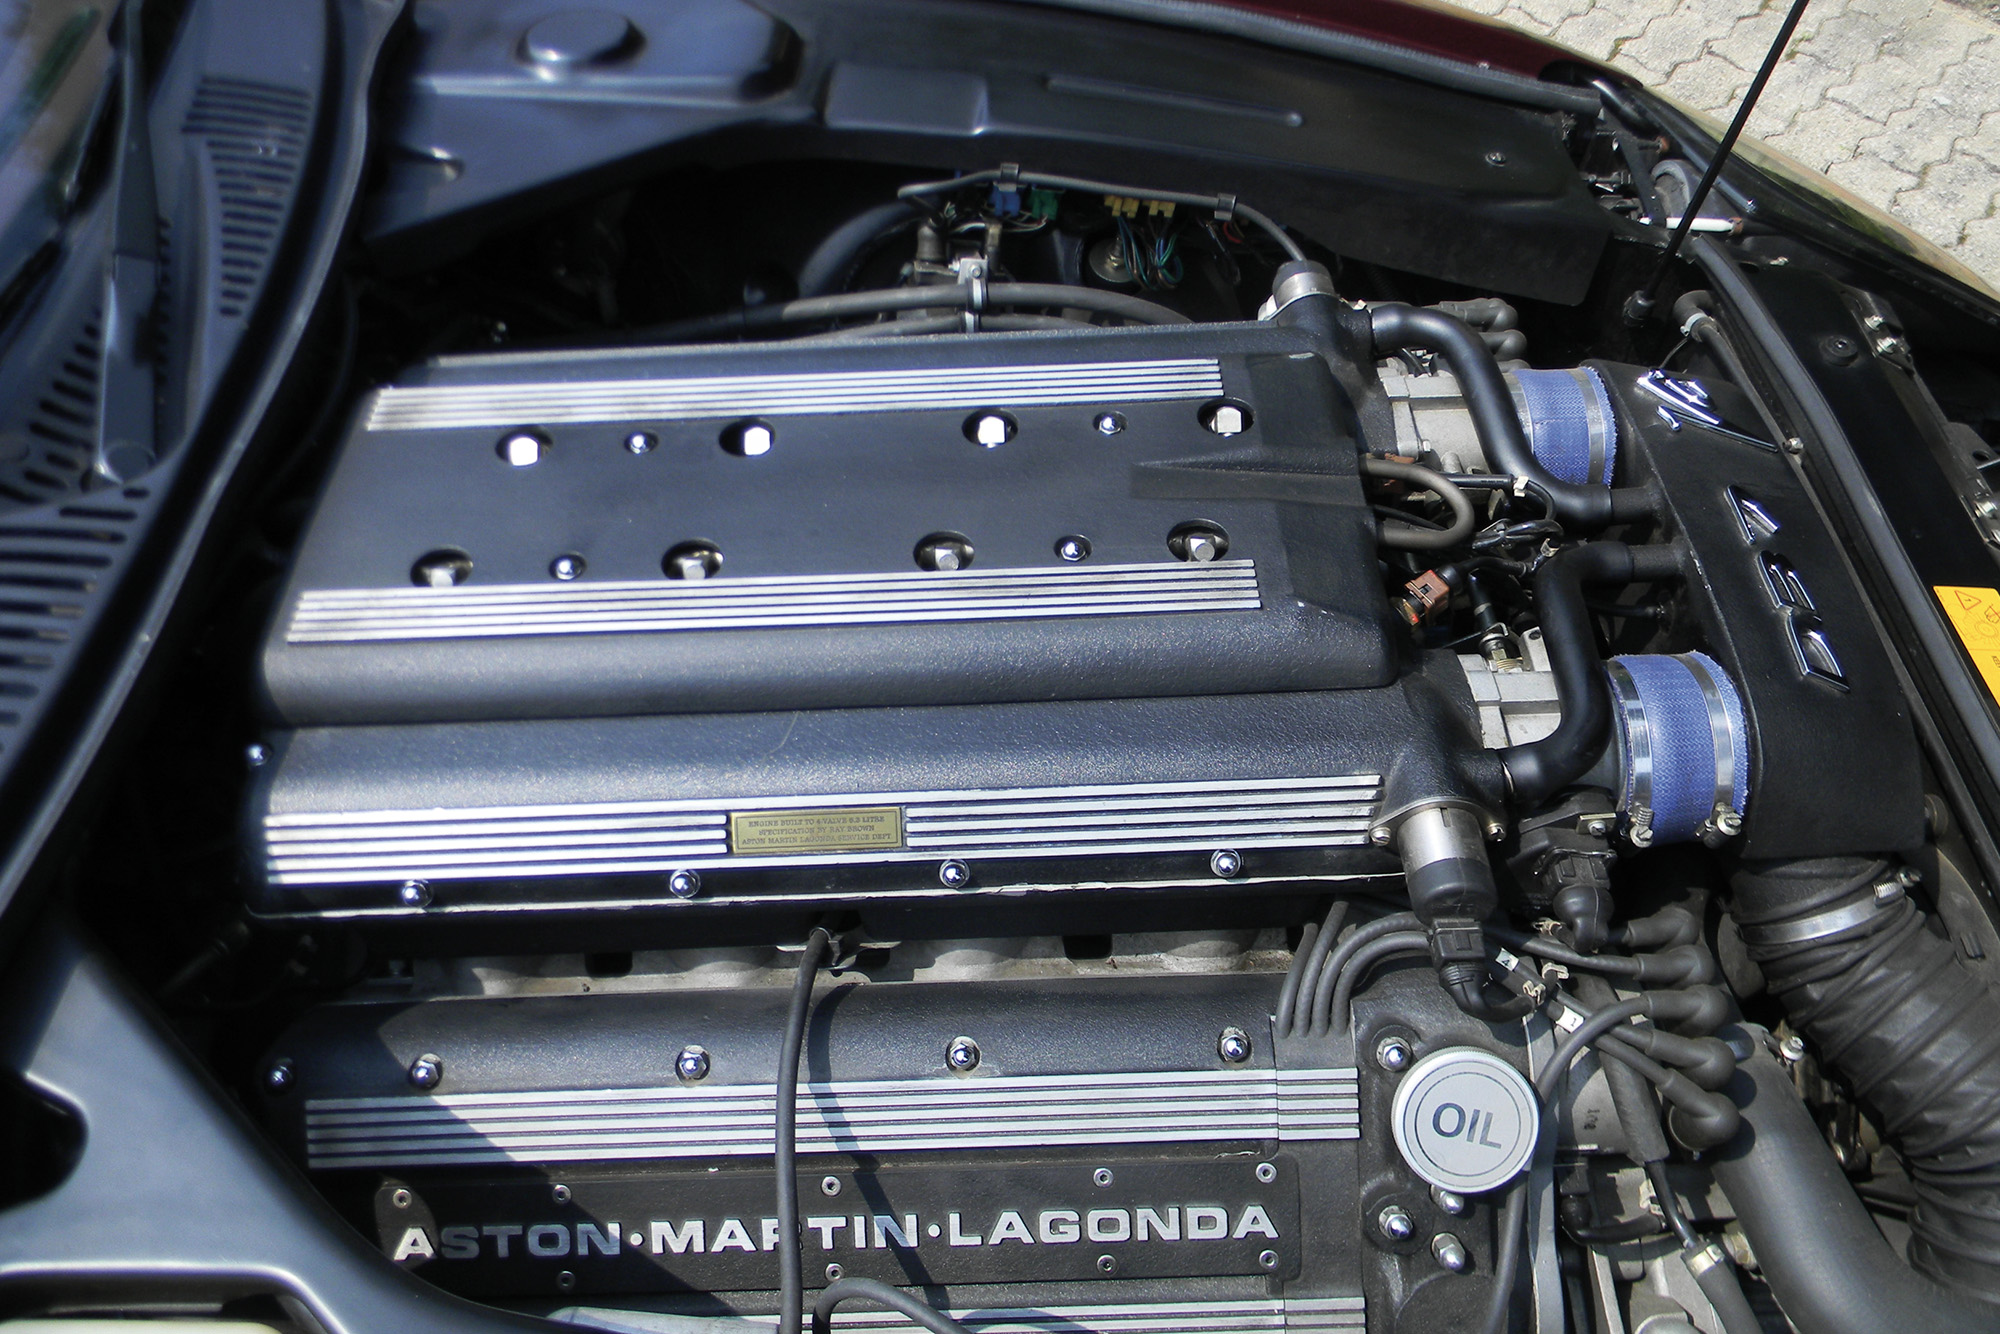 Aston Martin DB7 engine